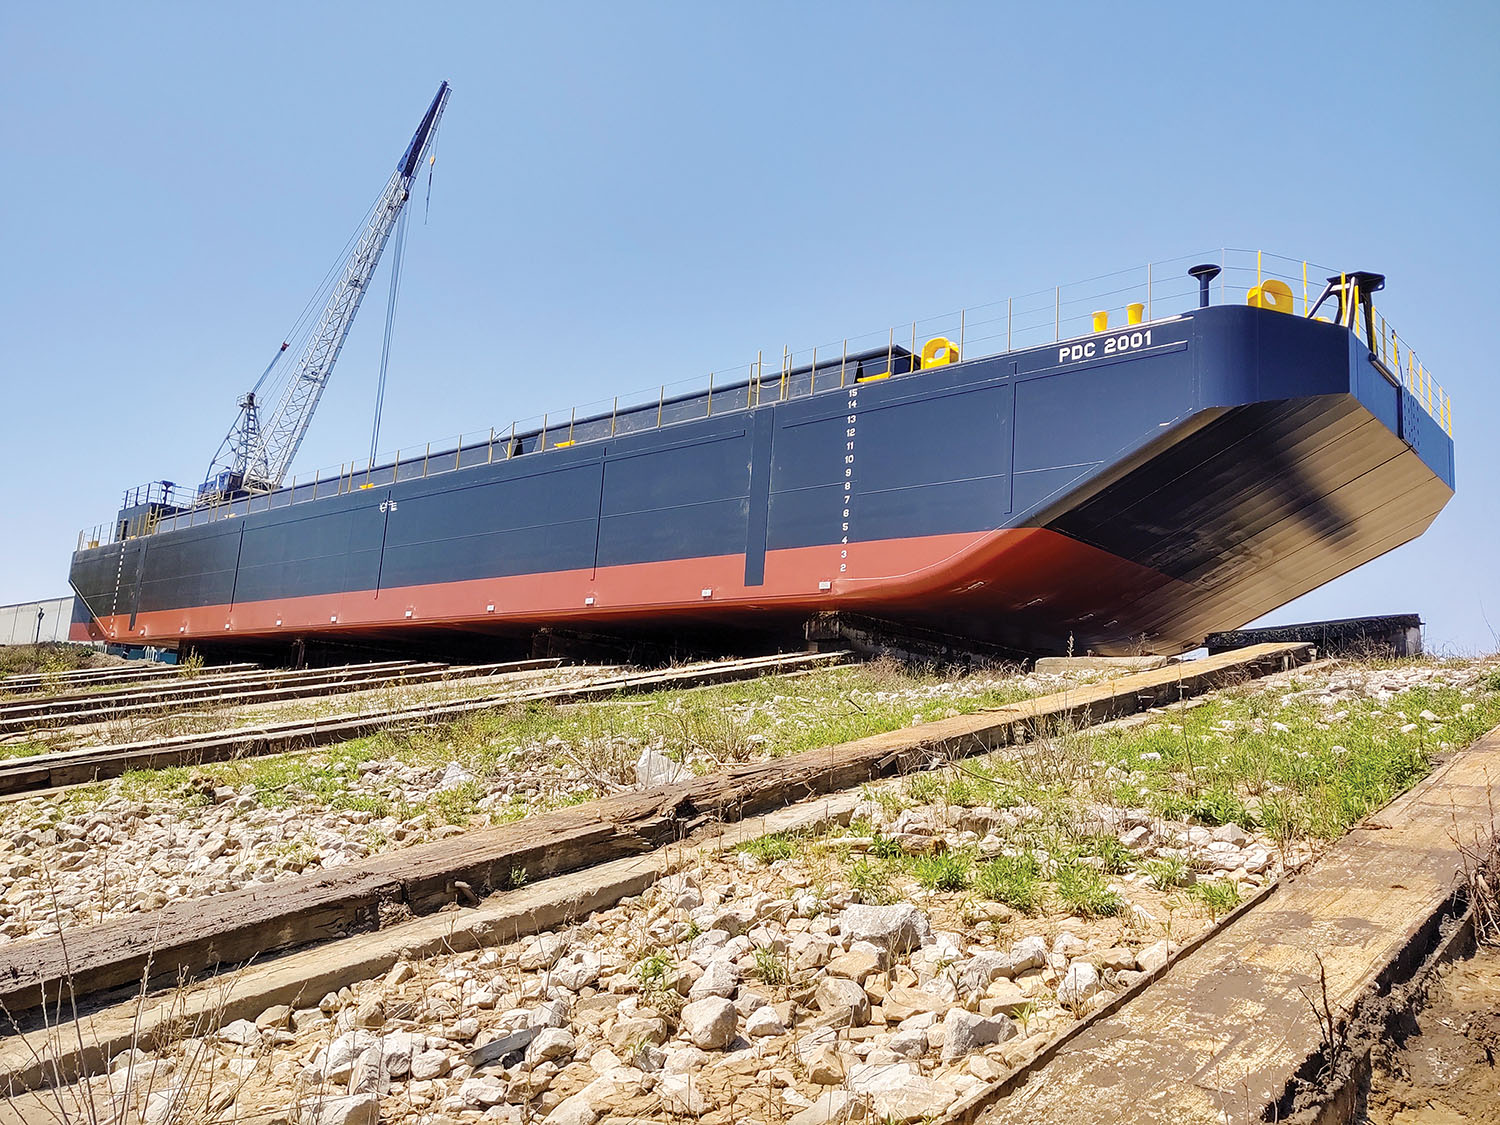 First of two barges slated for delivery to San Diego, Calif. (Photo courtesy of Corn Island Shipyard)